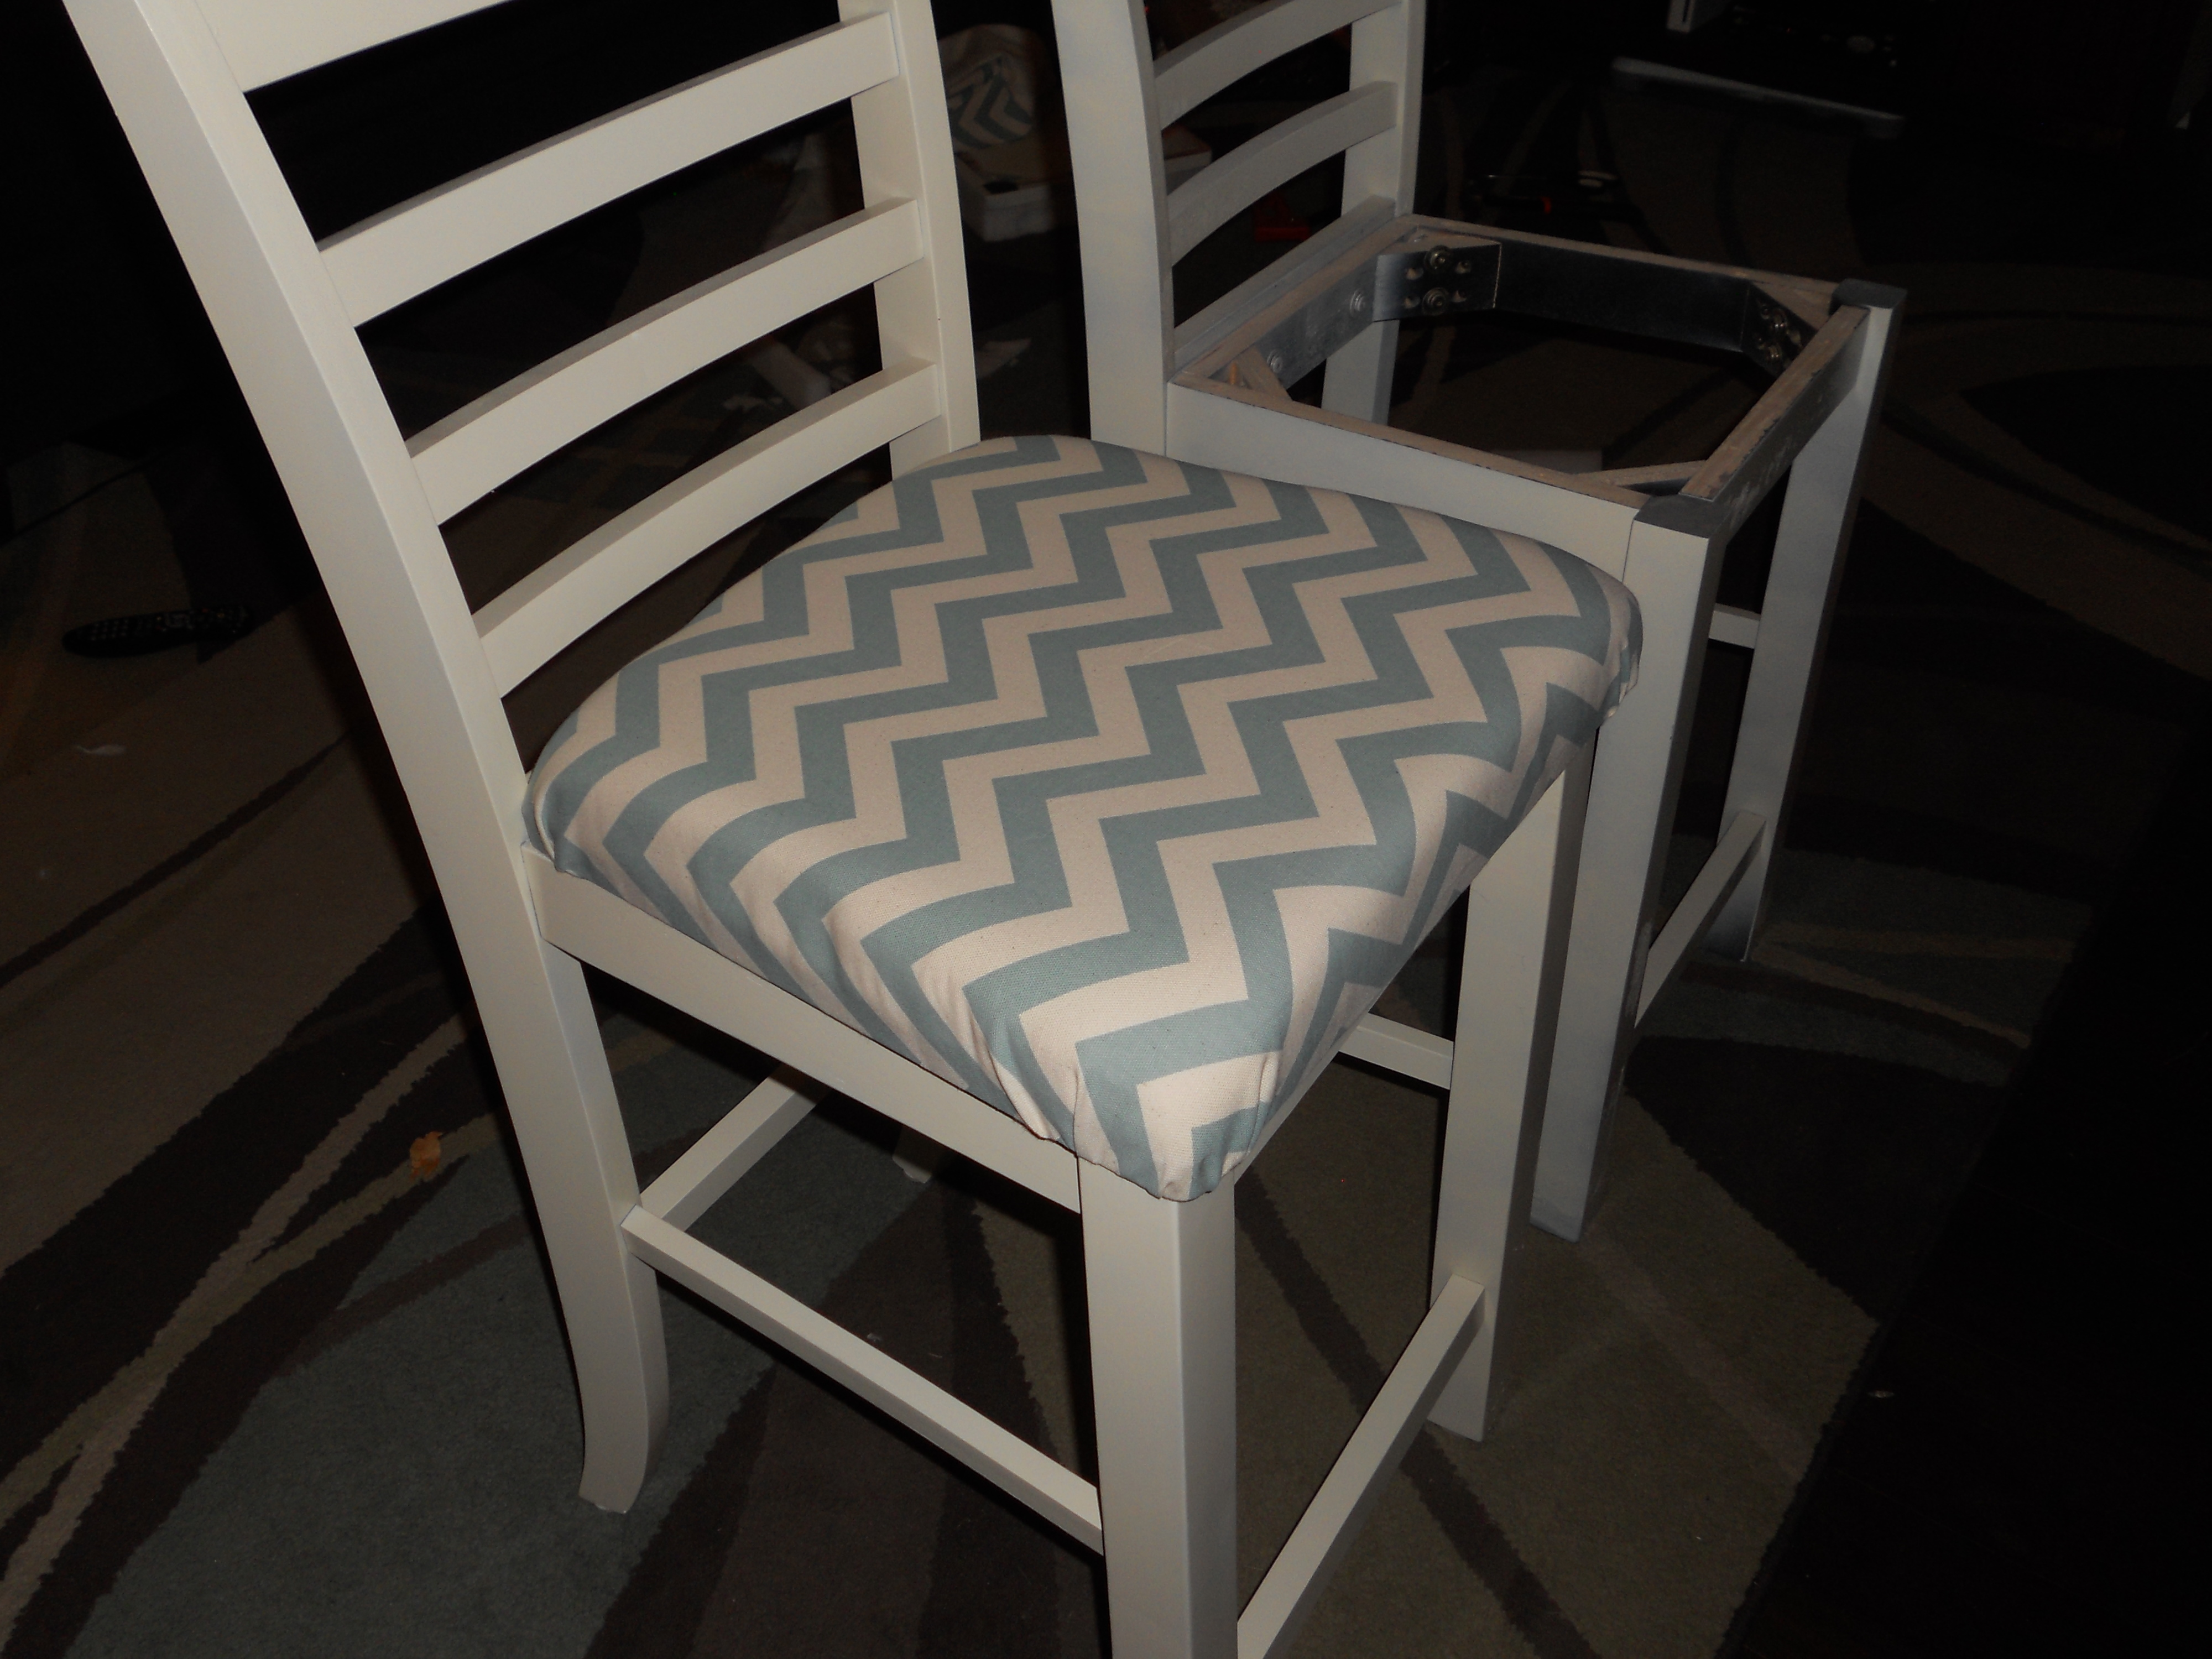 Diy Chair Cushions Diy Painting Chairs And Adding Upholstered Cushions To A